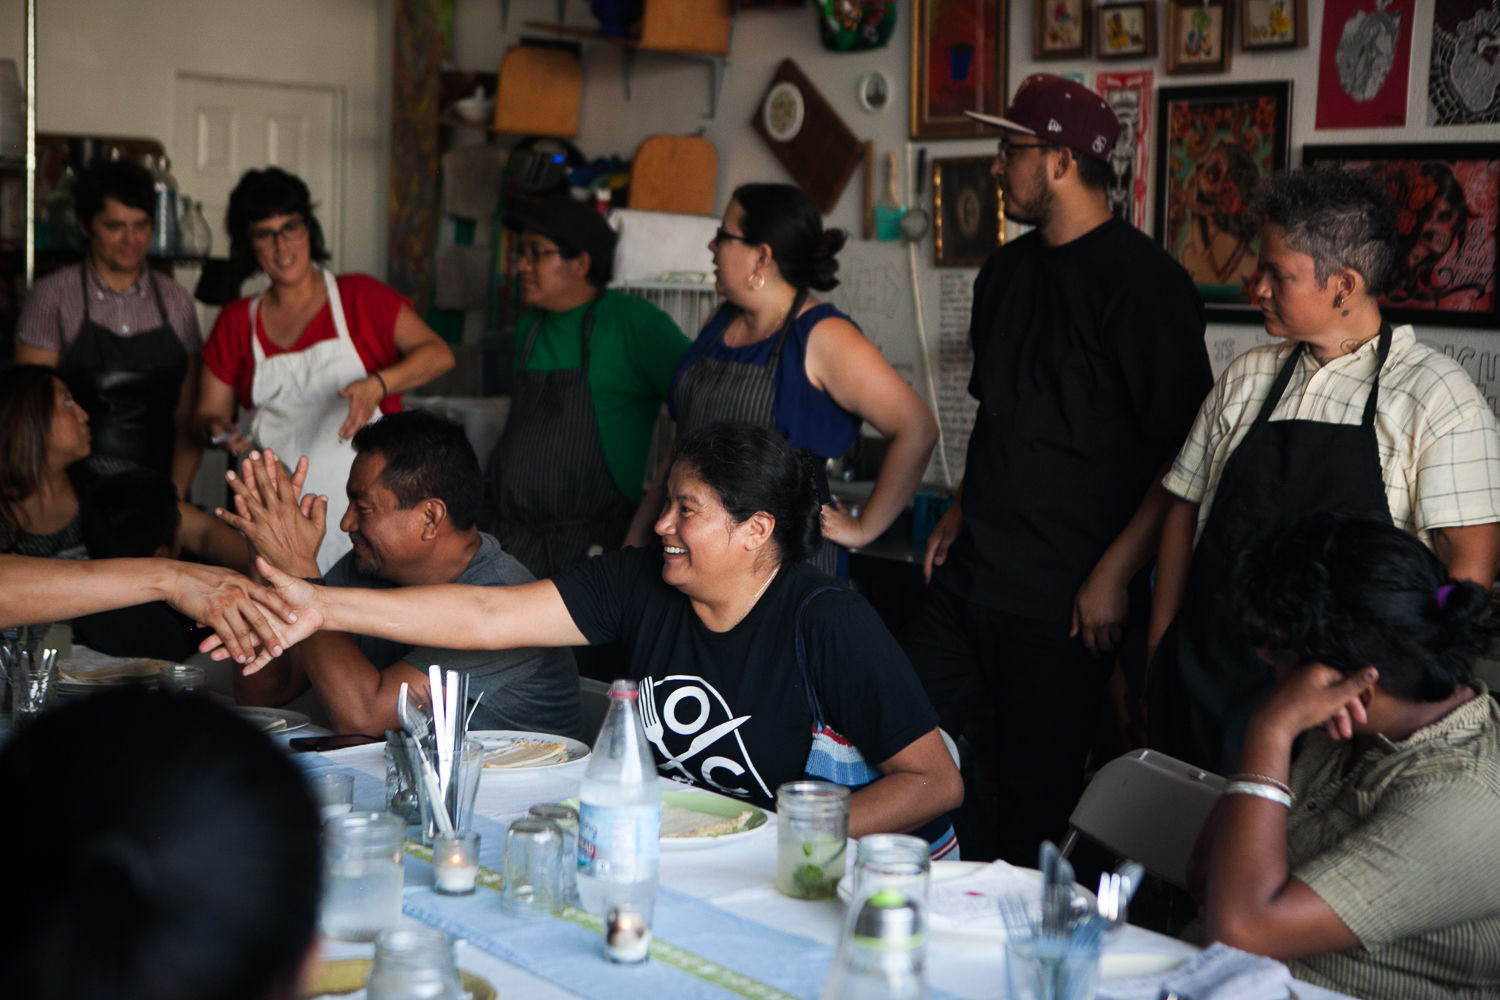 The Worker Body, dinner and facilitated conversation by and for restaurant workers, Cocina Abierta and Restaurant Opportunities Center of Los Angeles event, July 2015.